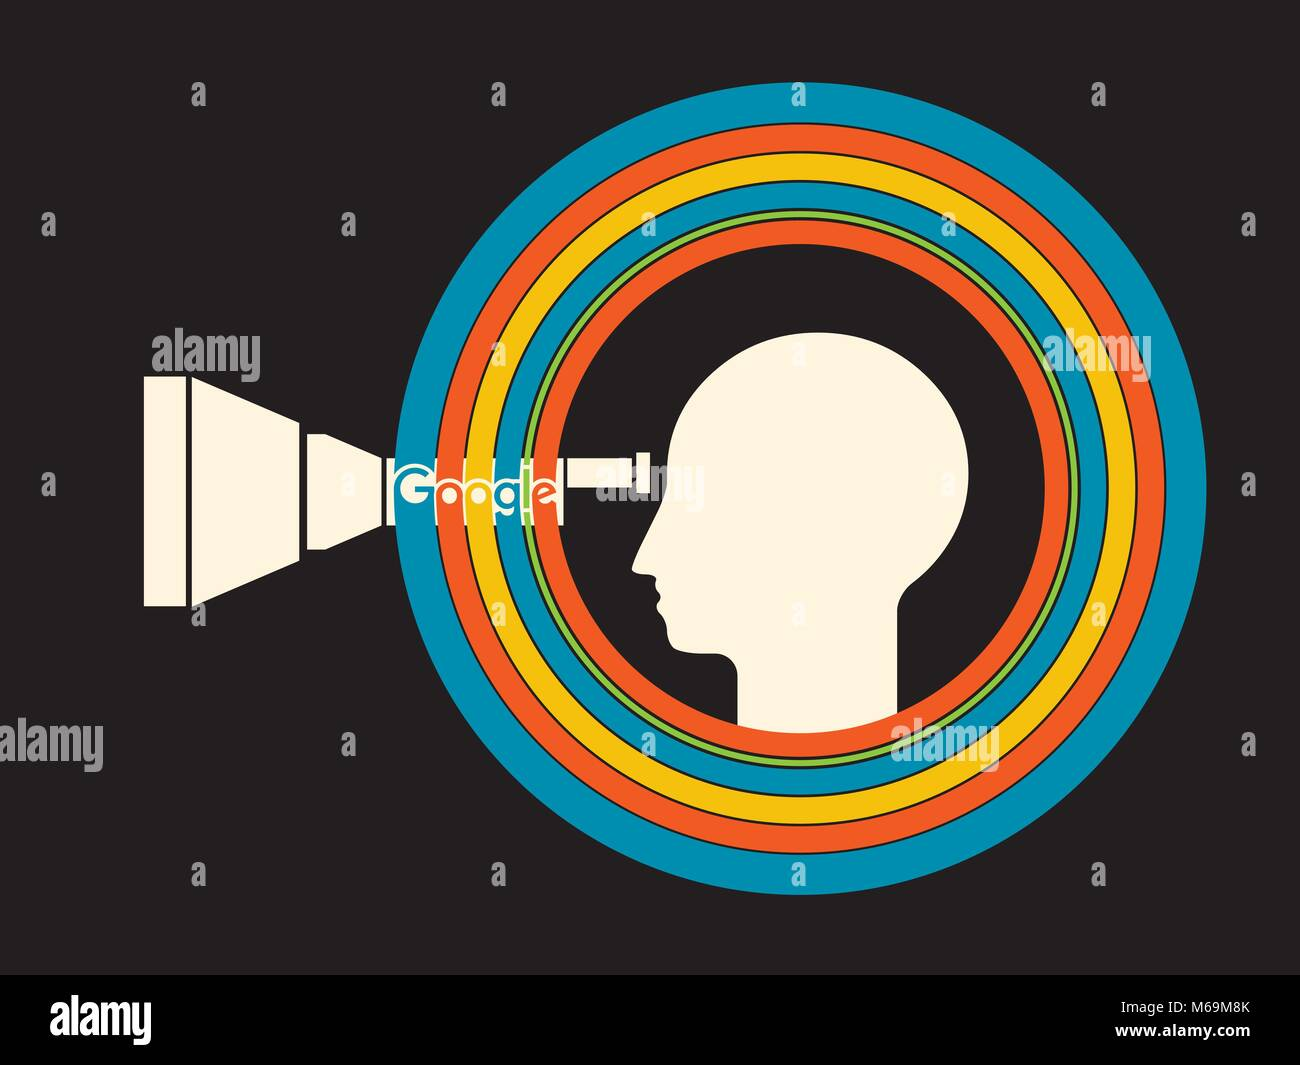 Living in the personal bubble. Looking to the word through google eyes. Illustrative Editorial Image - Stock Vector